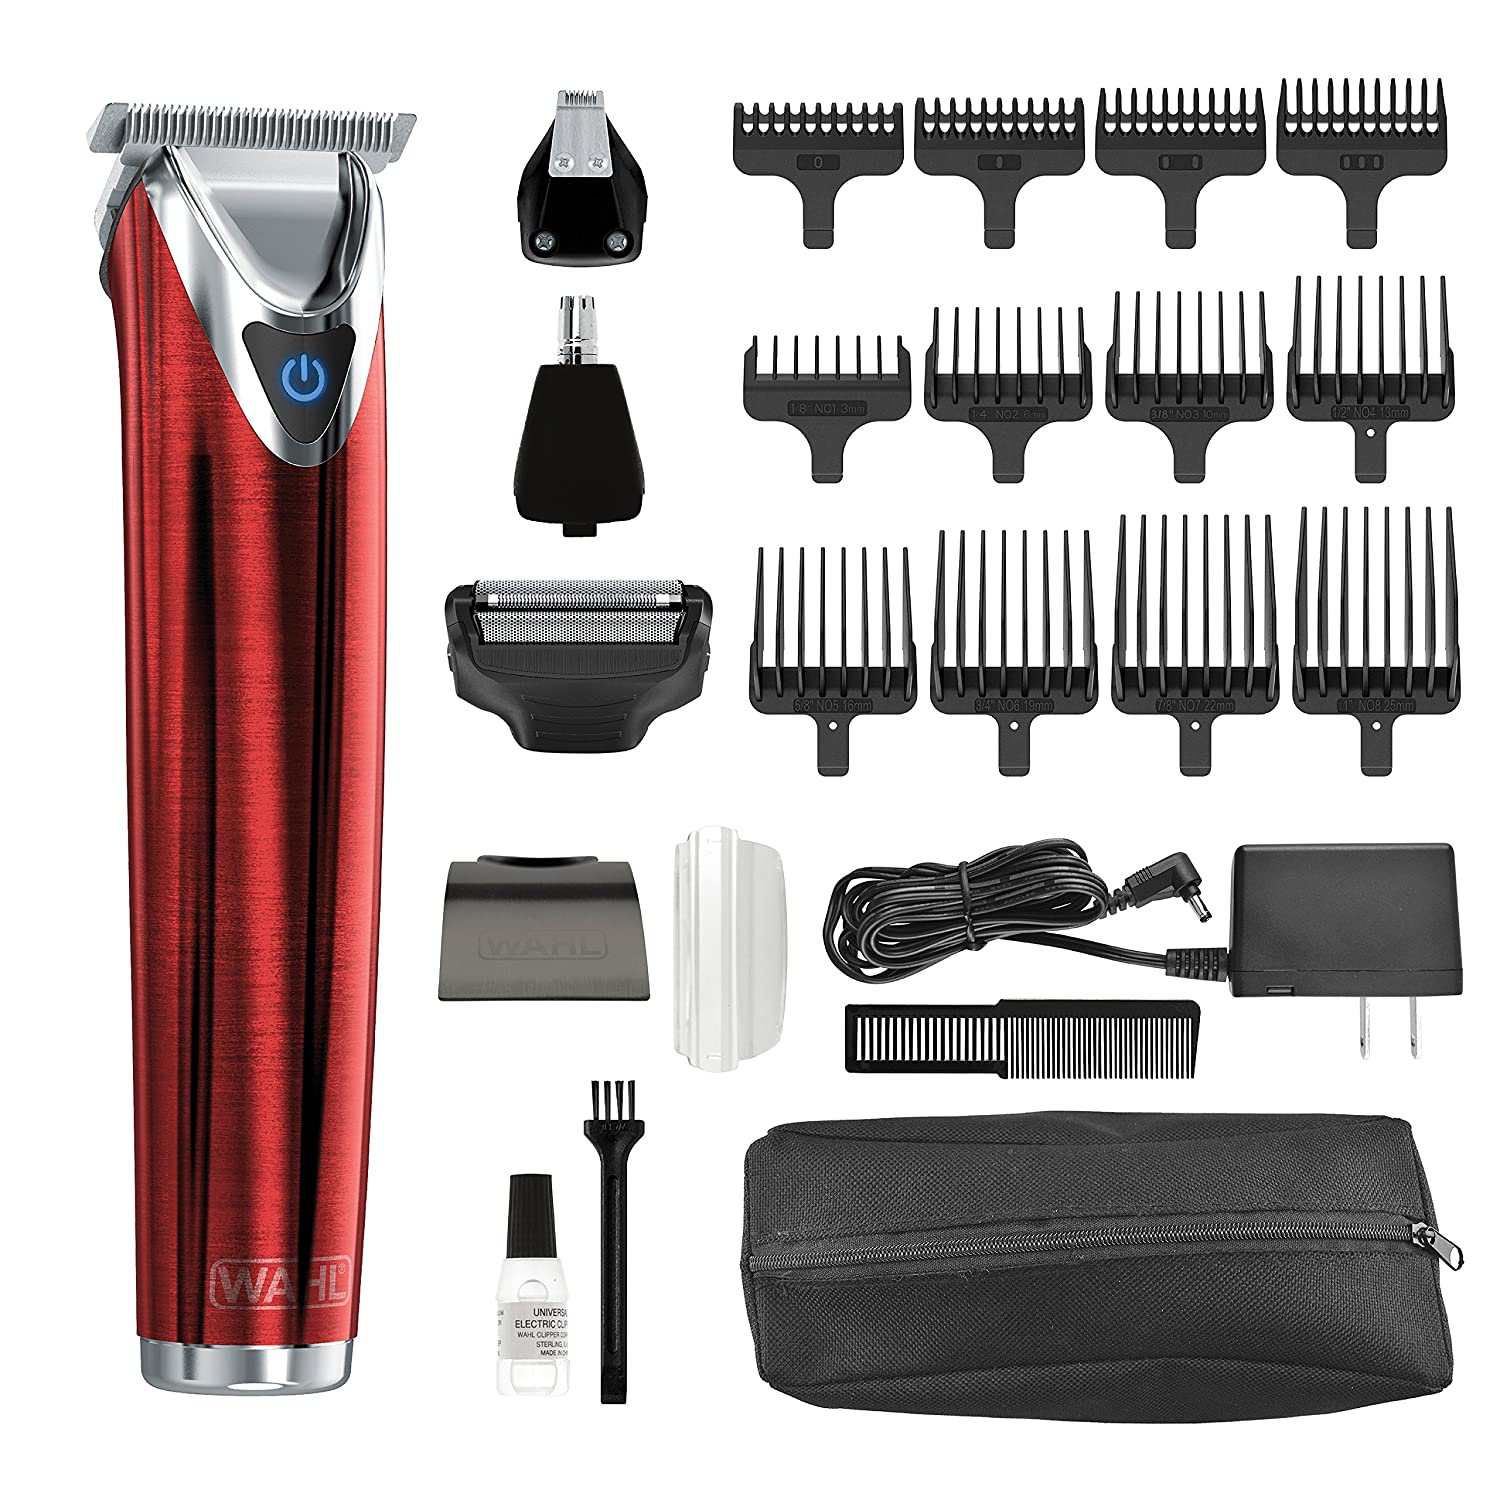 Wahl Clipper Stainless Steel Lithium Ion Plus Beard Trimmer Kit Brushed No.9864SS Cordless Rechargeable Men's Grooming Kit for Haircuts and Beard Trimming Wahl Clipper Corp